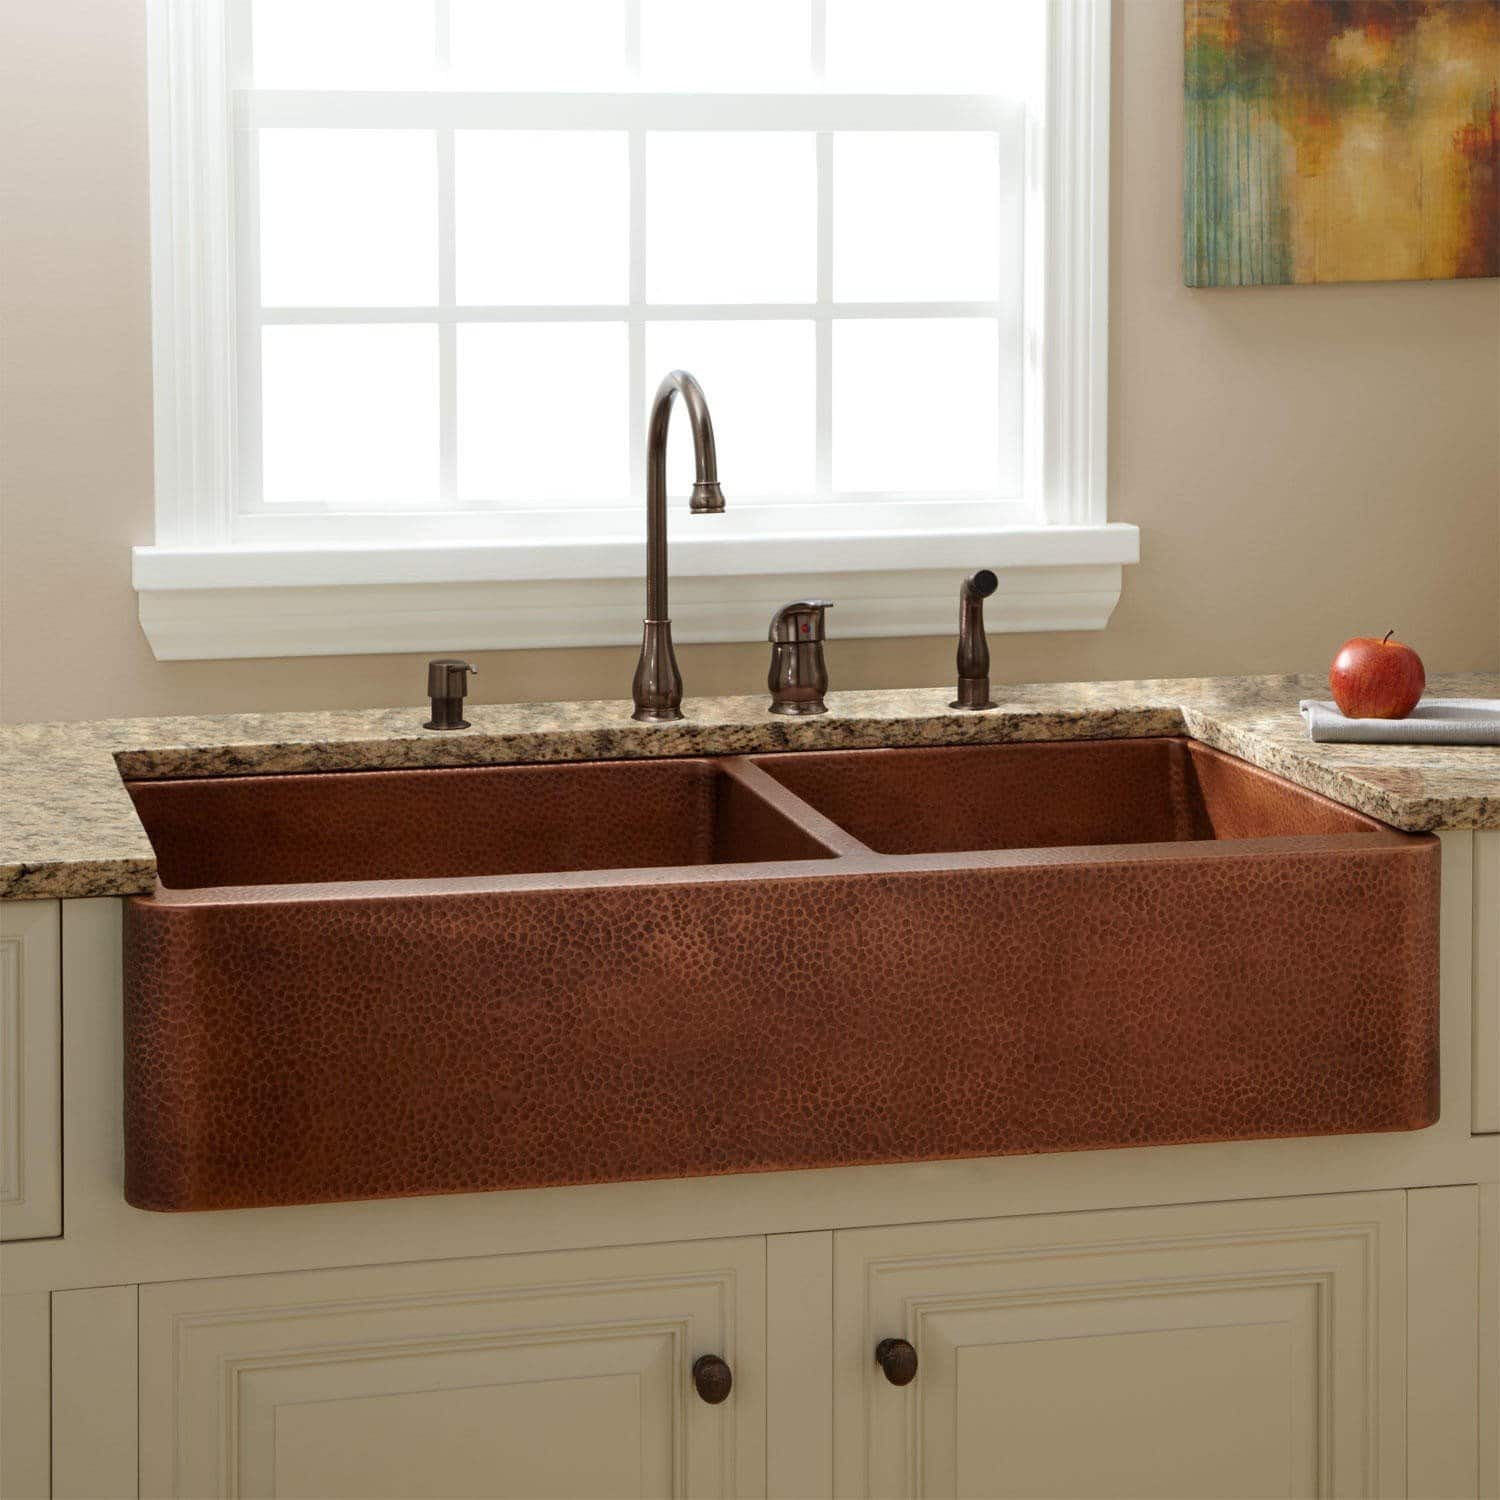 farmhouse-kitchen-sink-classic-with-picture-of-farmhouse-kitchen-property-fresh-at-gallery